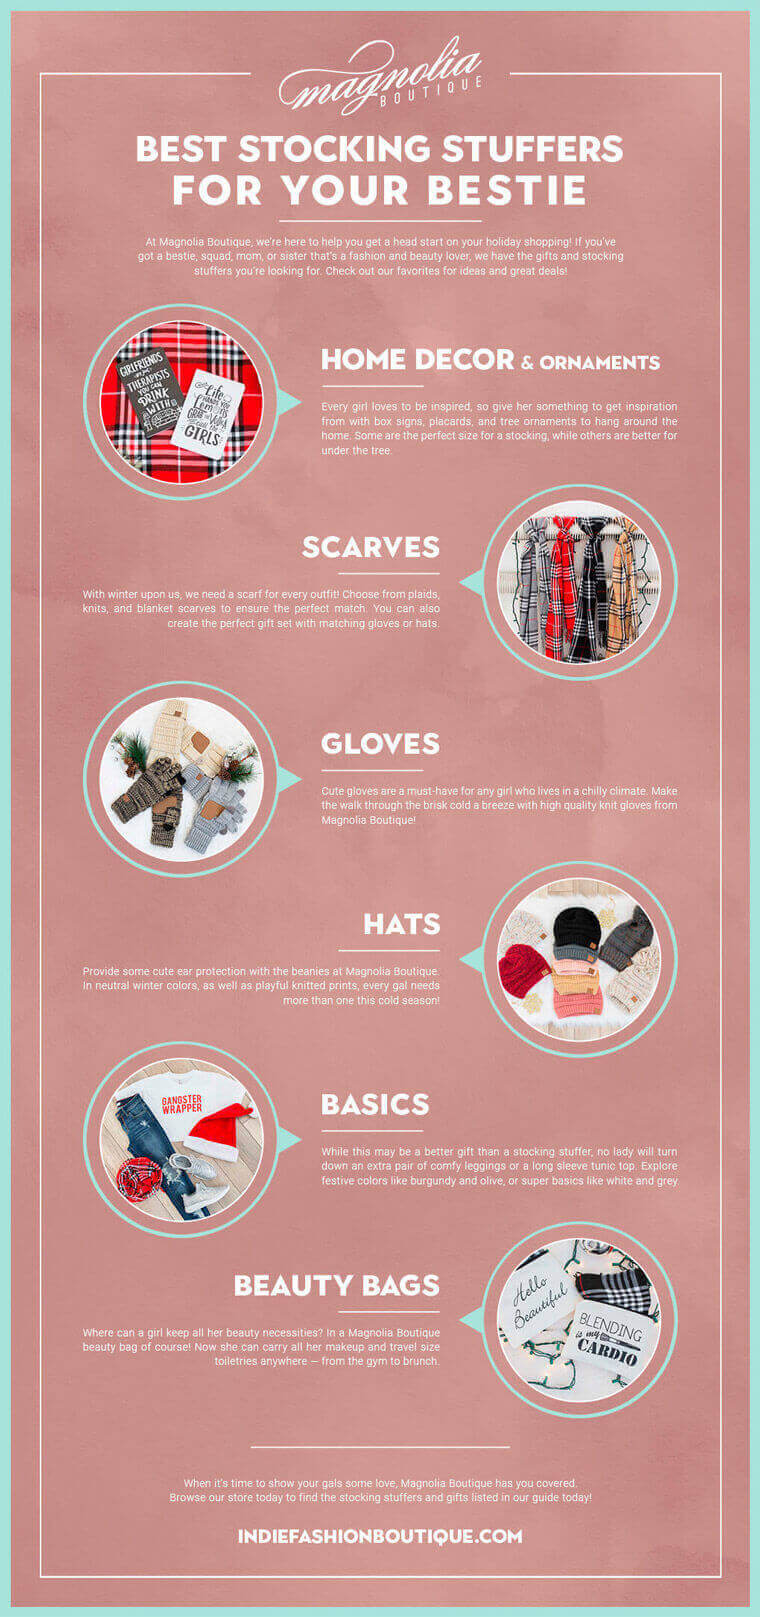 stocking stuffers infographic